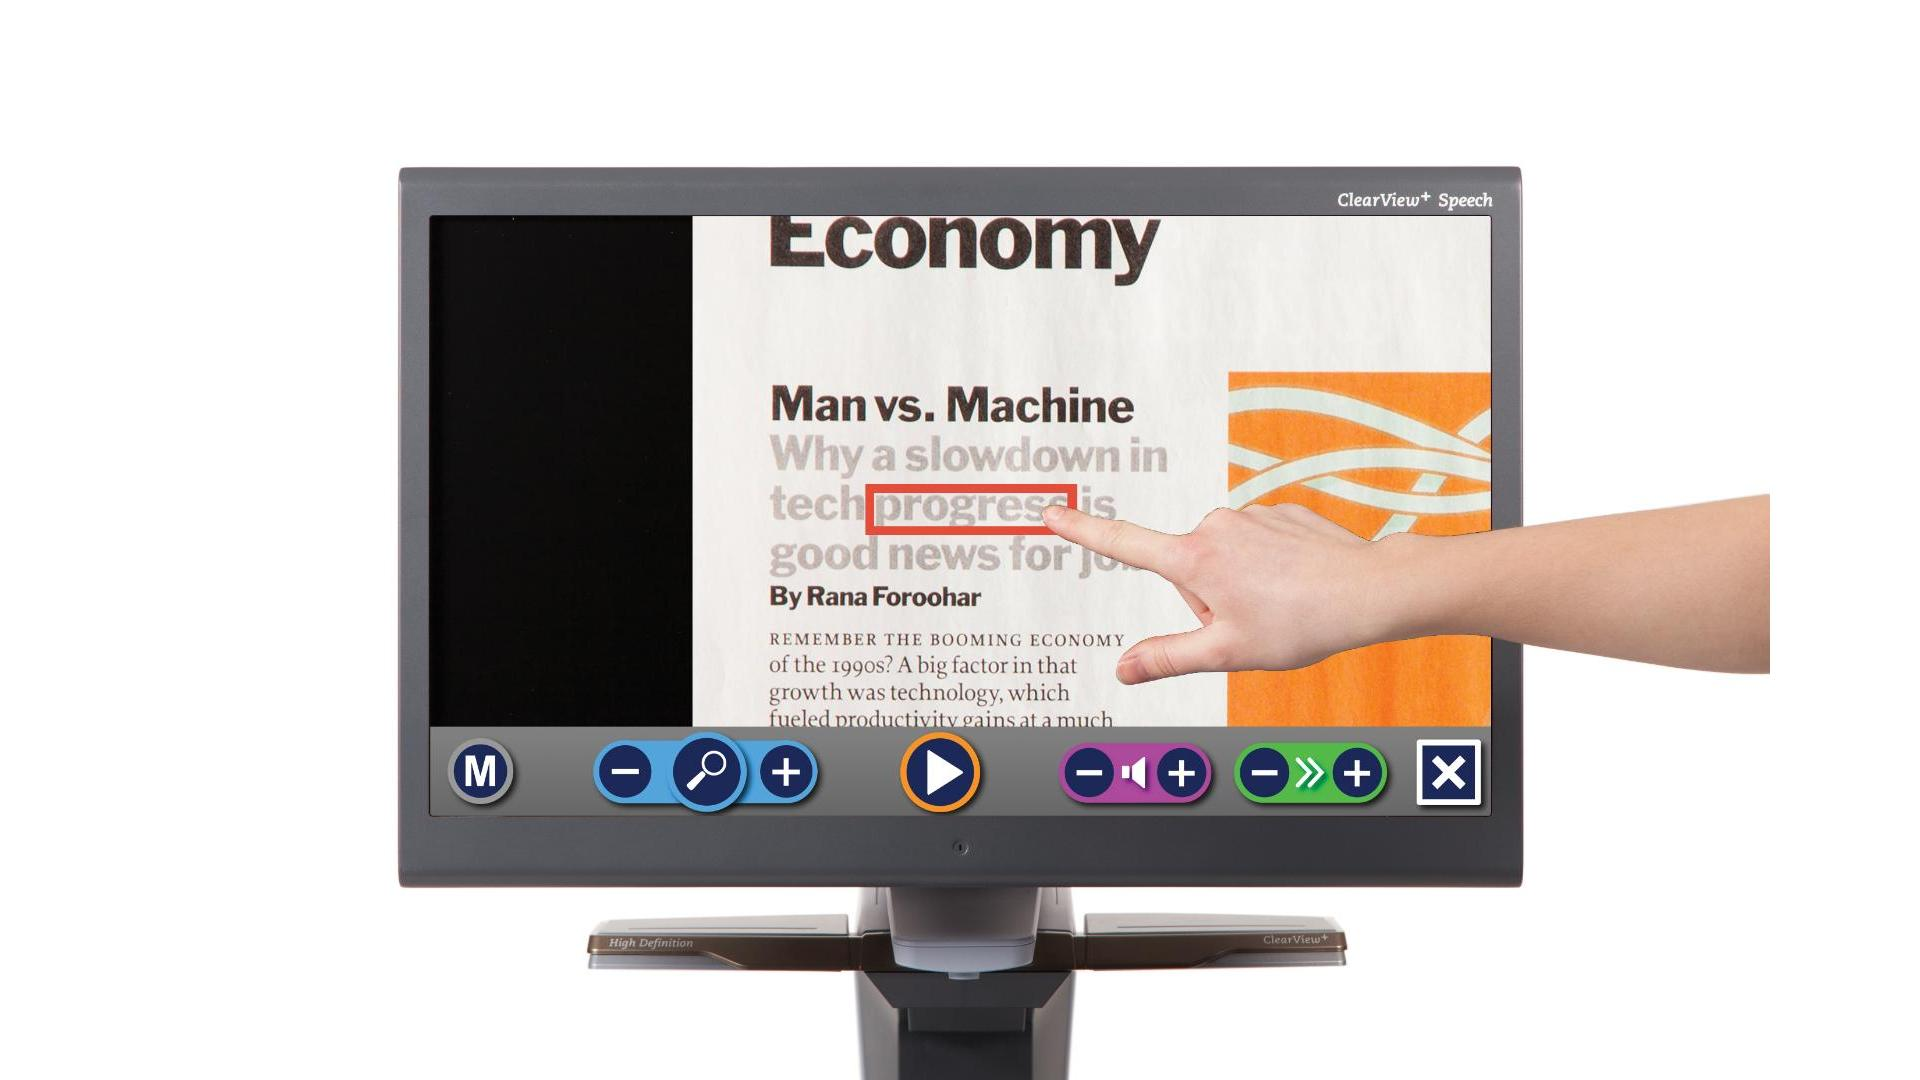 "The ClearView+ Speech is a pictured as a display with the ClearView+ Speech logo at the top right. The cover image displayed is the user interface automatically reading text with the current word in a red box. On the bottom is a bar of controls. On the far left is an ""M"" button with a circle around it. On the middle-left is a set of three buttons: a minus, a magnifying glass, and a plus with a circle around the magnifying glass and a pill-shape connecting the minus and plus buttons. Essentially it is a pill shape with a bulge in the middle for the magnifying glass. On the middle is a play button with a circle. On the middle right there are two sets of icons, both with (in order) minus, and plus. Among the two sets, the first is the ""volume"" icon in between the minus and plus, just like we saw with the magnifying glass. The second set of icons is a ""next"" icon with two carrot/arrows "">>"" in between a minus and plus button. On the far right there is an ""X"" or ""close"" button with a square box around it. The entire display is mounted on a smaller box, when is held by an arm (begin picturing from the side of the display instead of the front) at a 30 degree angle, connected to an object. Skipping over the backwards c-shaped object a bit, on the bottom is rectangular plate for placing objects to magnify. In the bottom margin of the plate is a scroll wheel with a click button in the center, and an orange button above it."